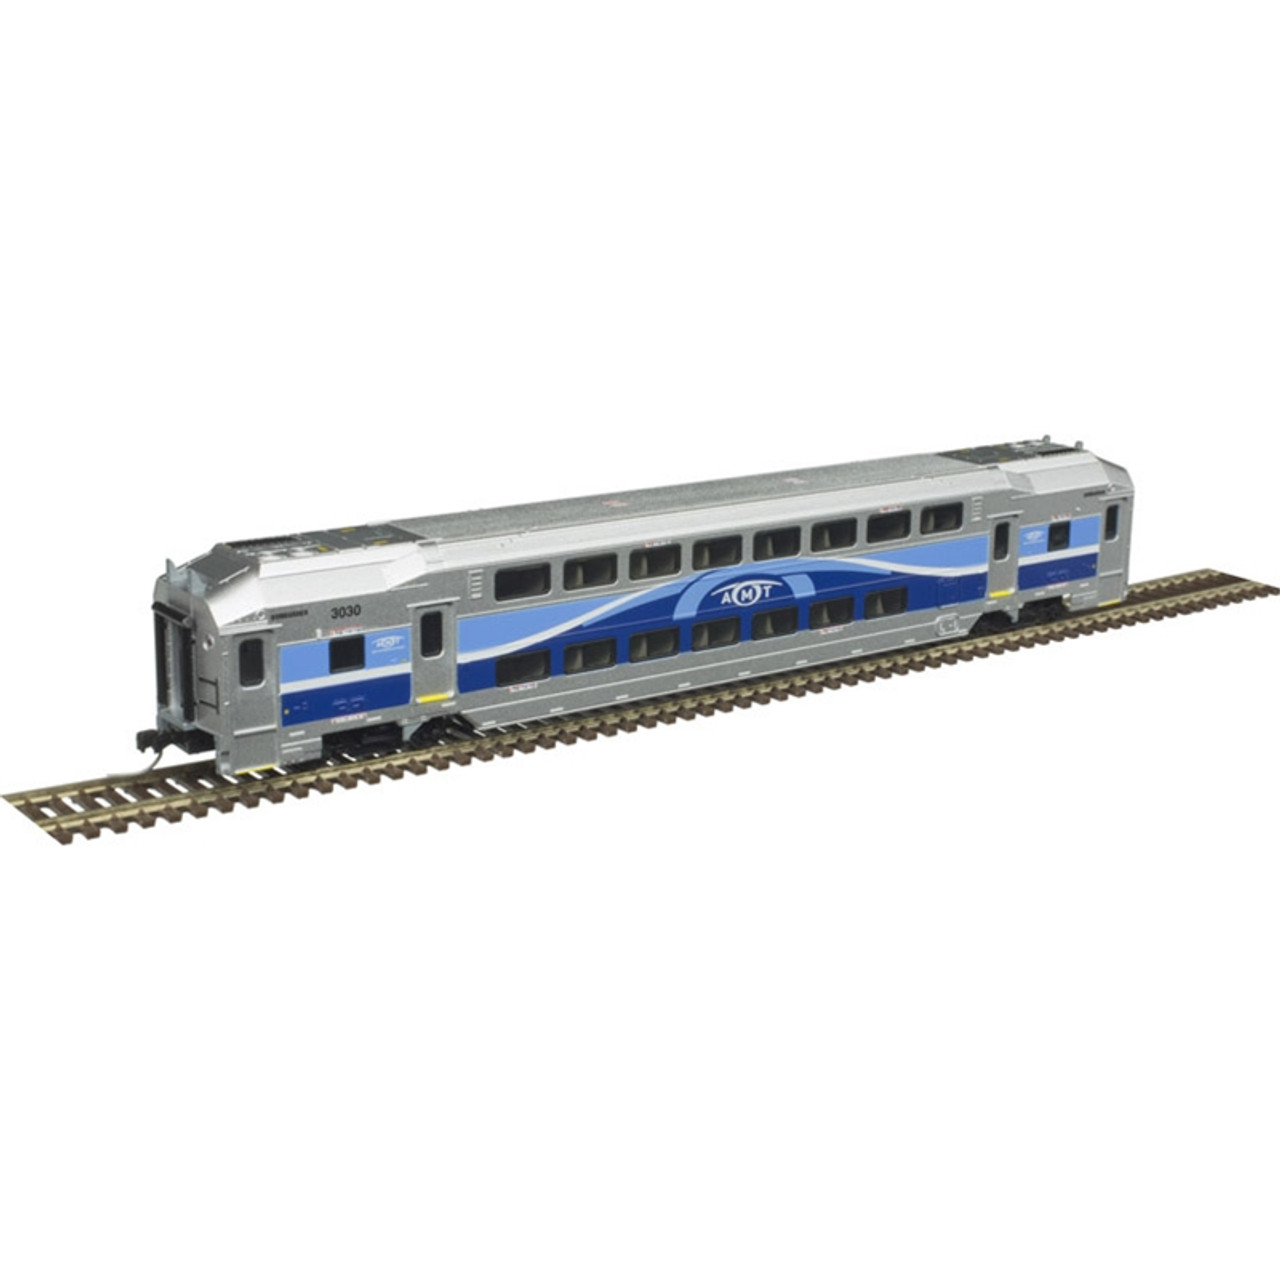 ATLAS 50004405 AMT - Cab Car #3022 + Trailer #3039 + Trailer #3087 (SCALE=N) Part # 150-50004405